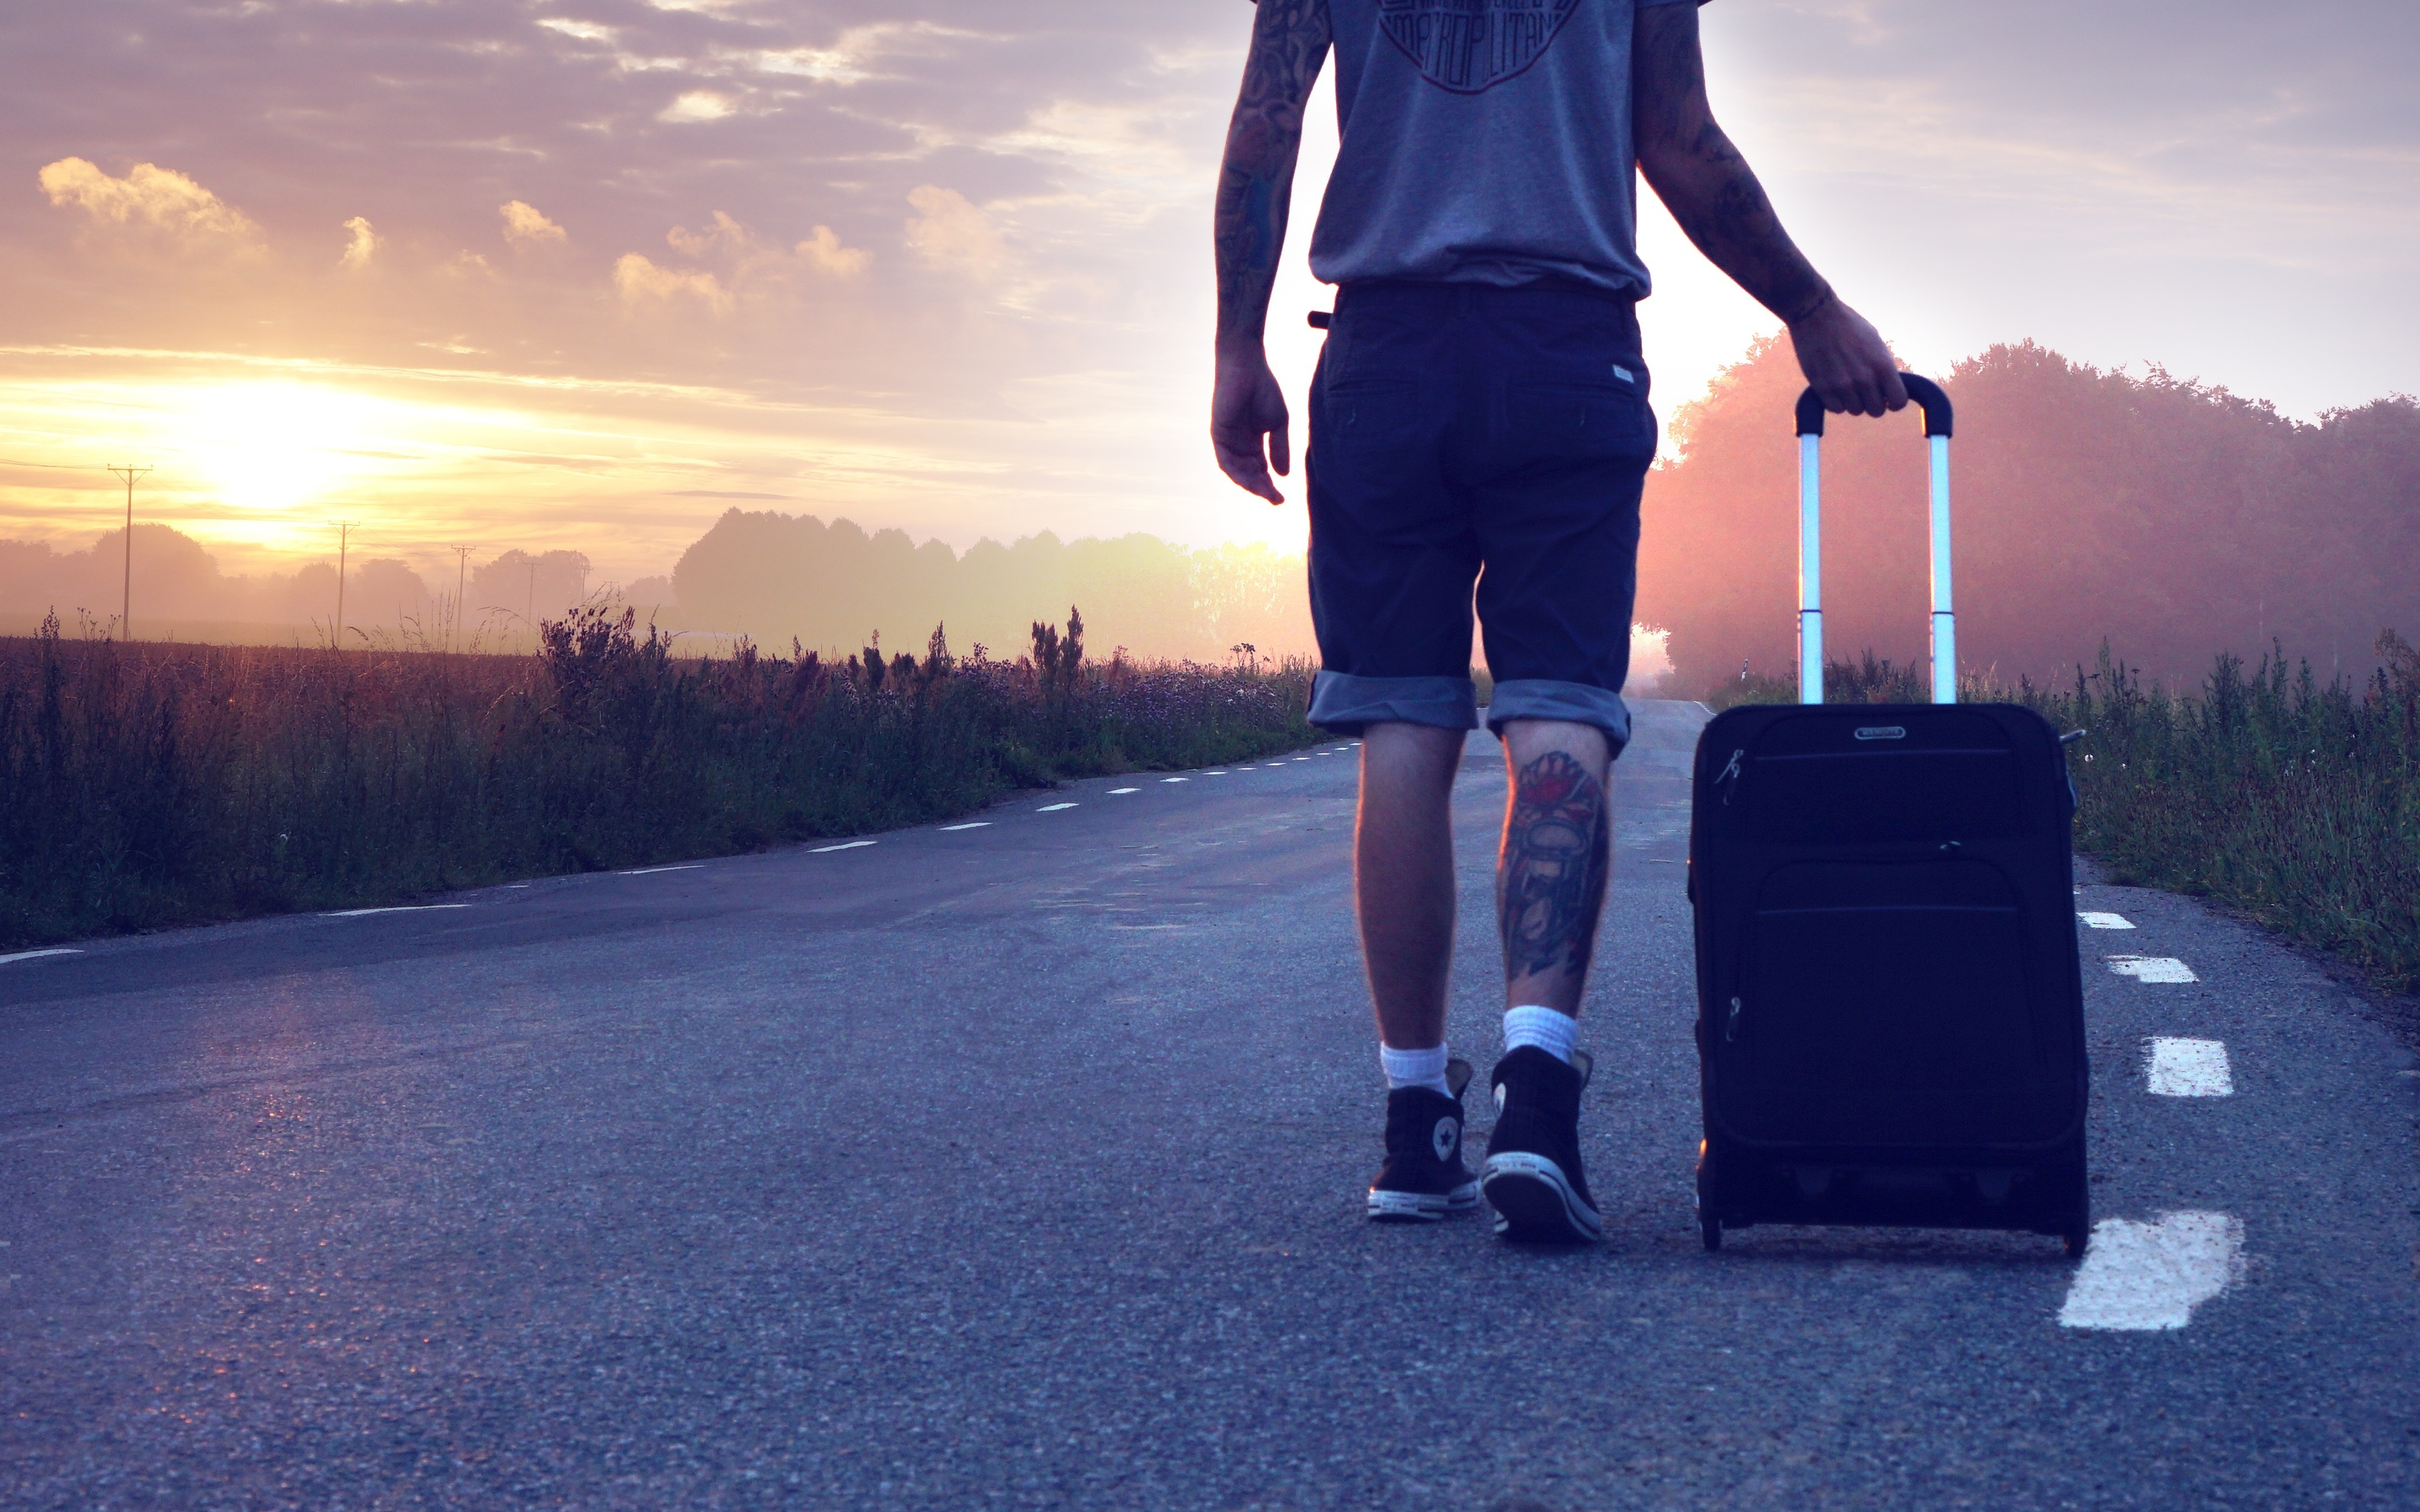 person-walking-on-road-with-suitcase-kv.jpg